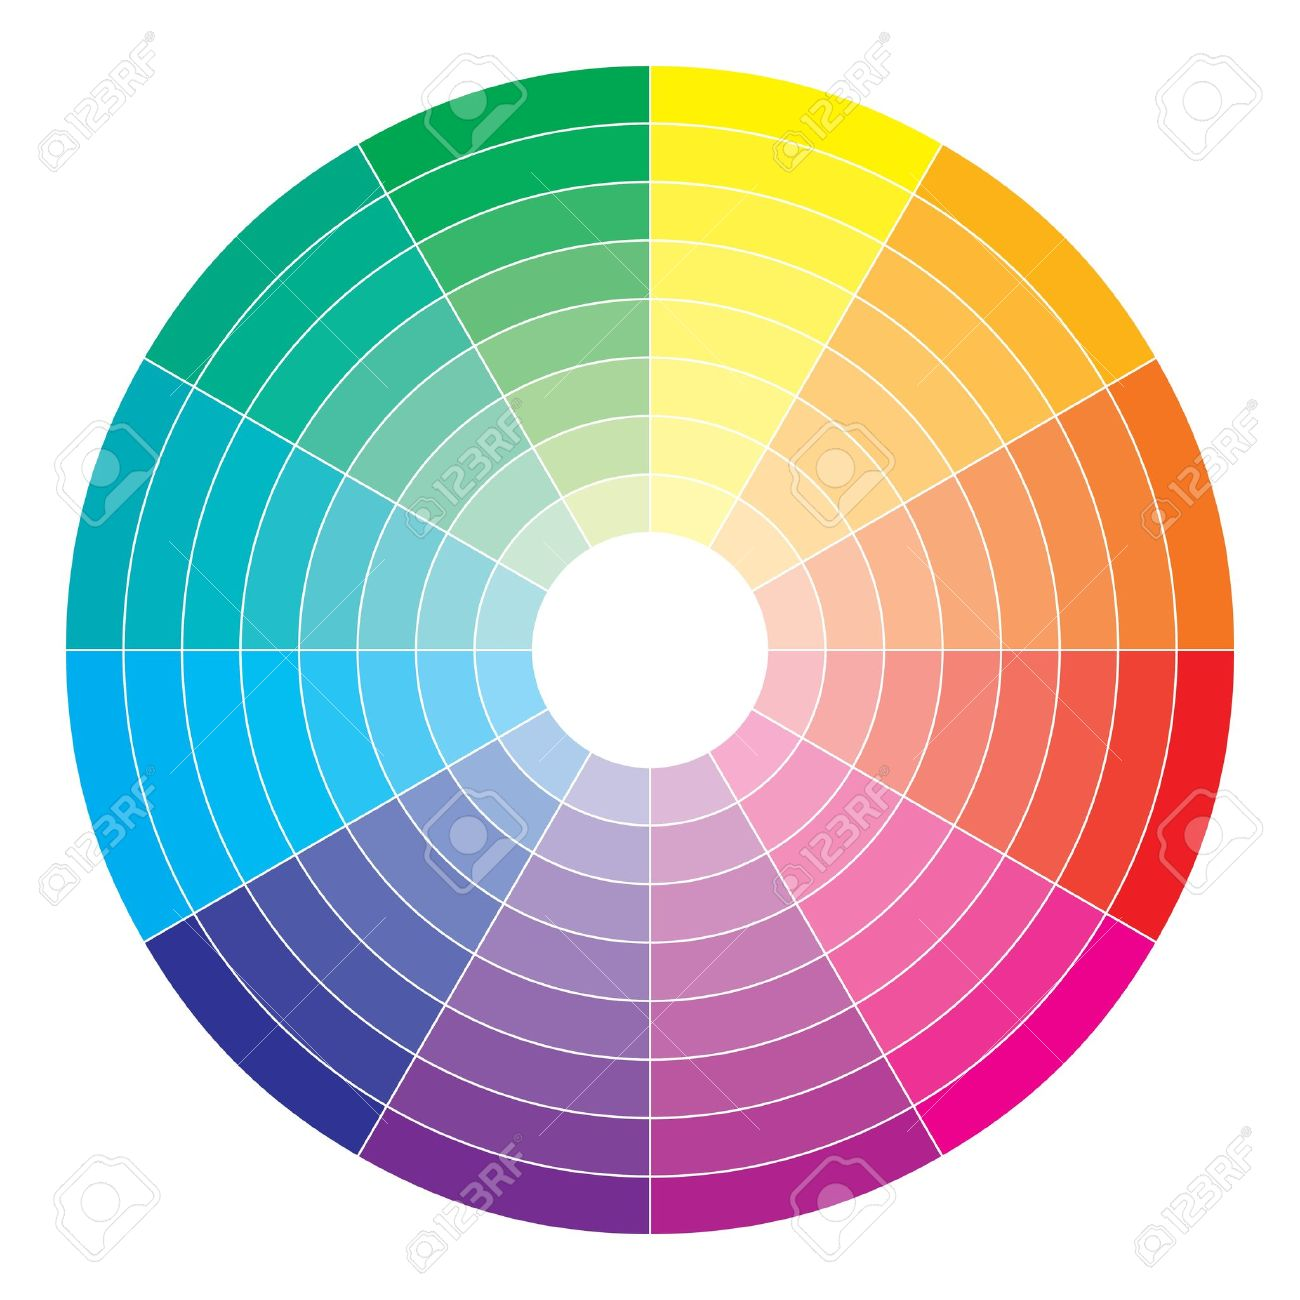 color spectrum abstract wheel, colorful diagram background complementary color diagram lab color space and values x rite